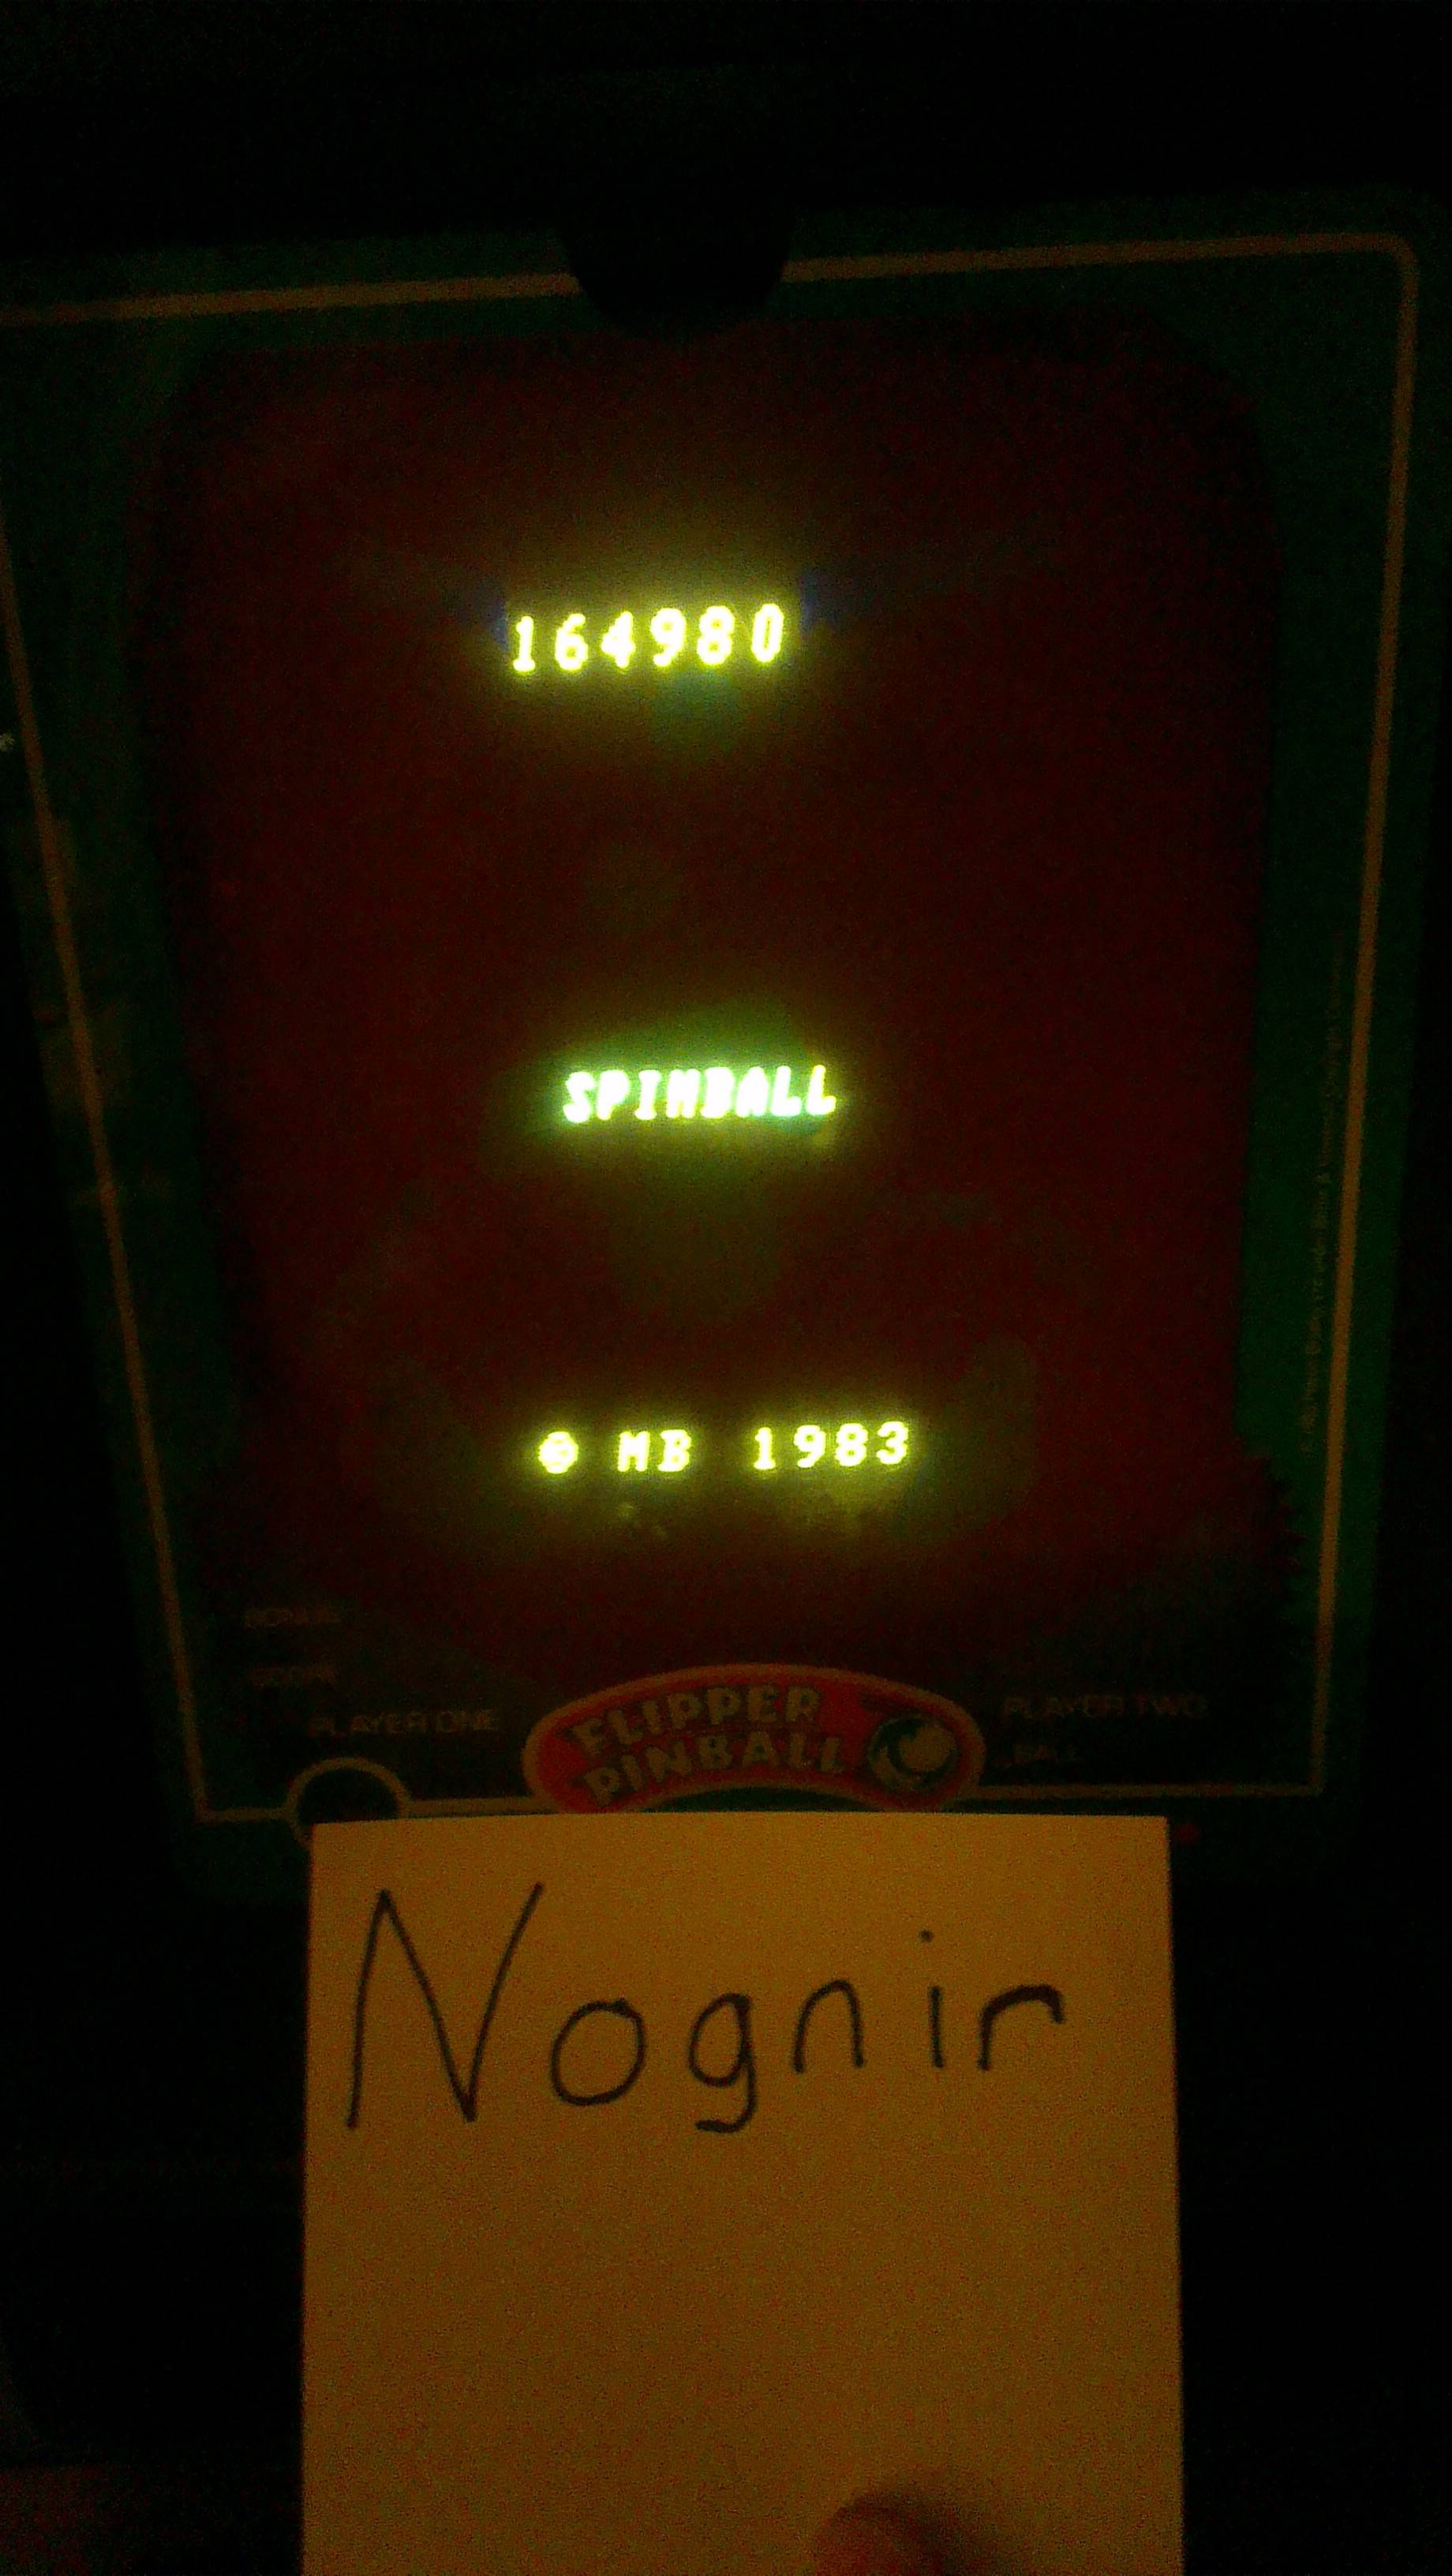 Flipper Pinball/Spinball 164,980 points